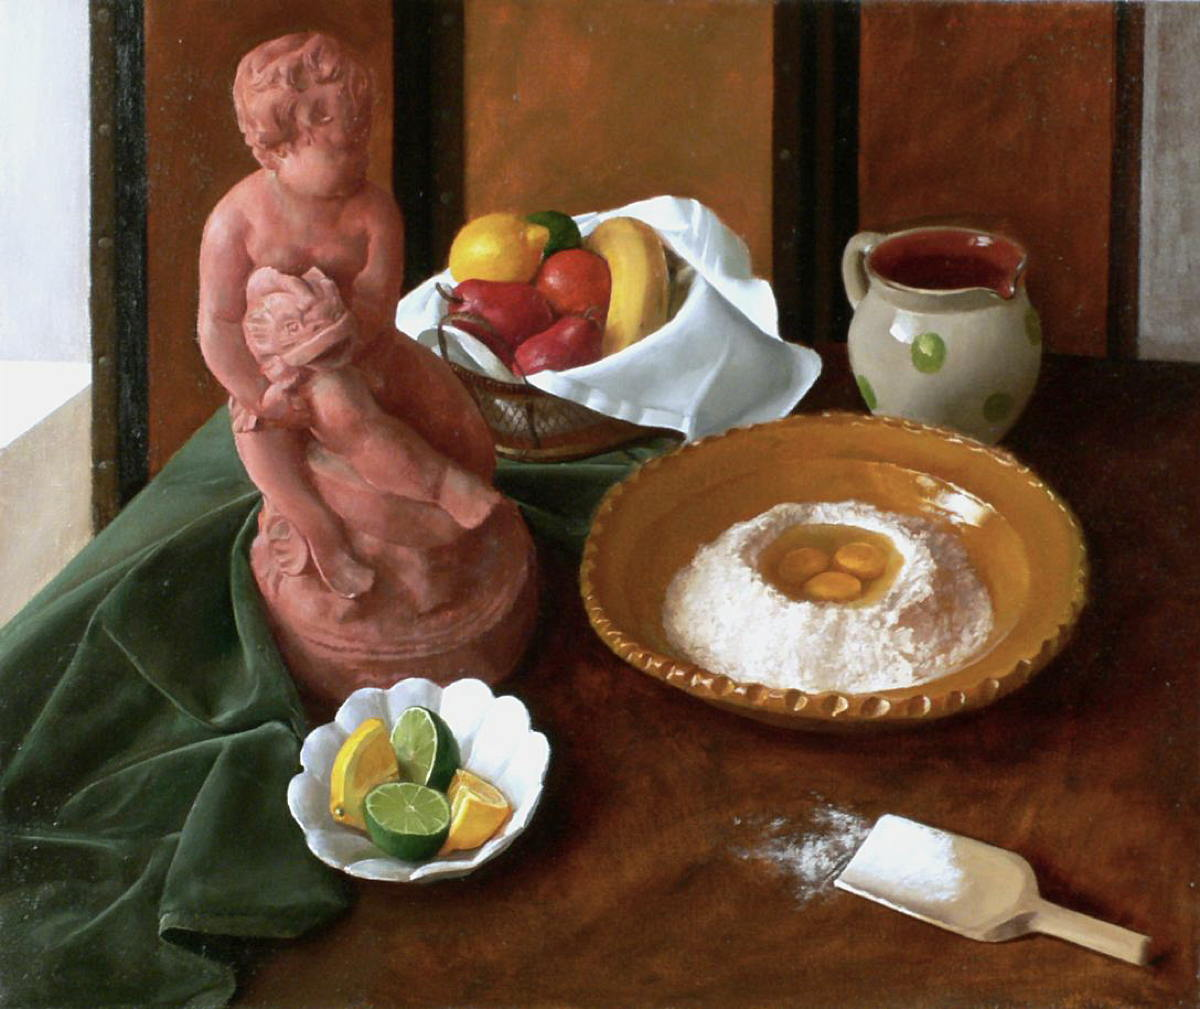 CONKLIN_KitchenStillLife